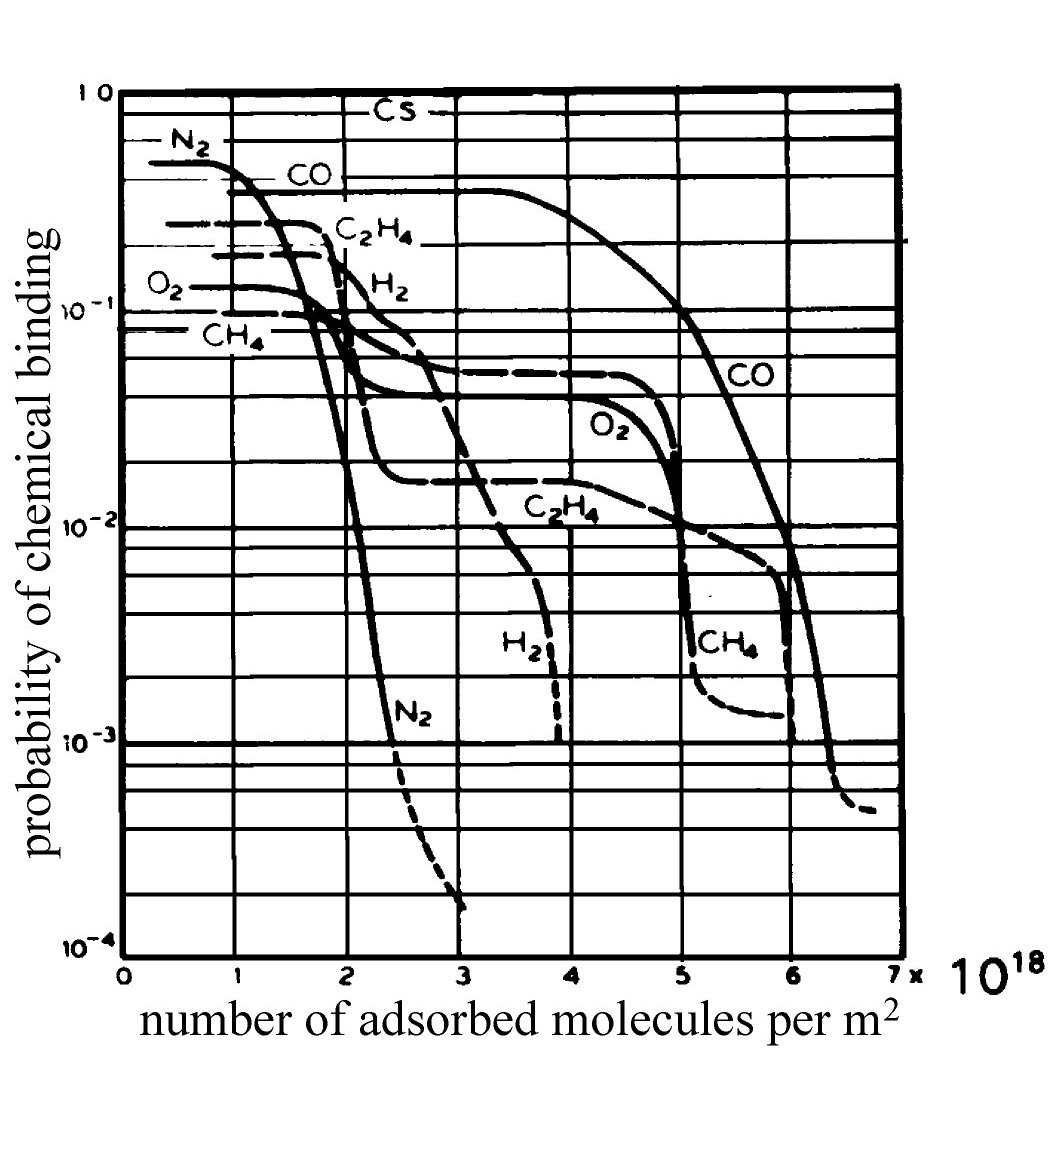 Gas-solid interaction - Stepwise decrease of chemical bond probability as a function of coverage